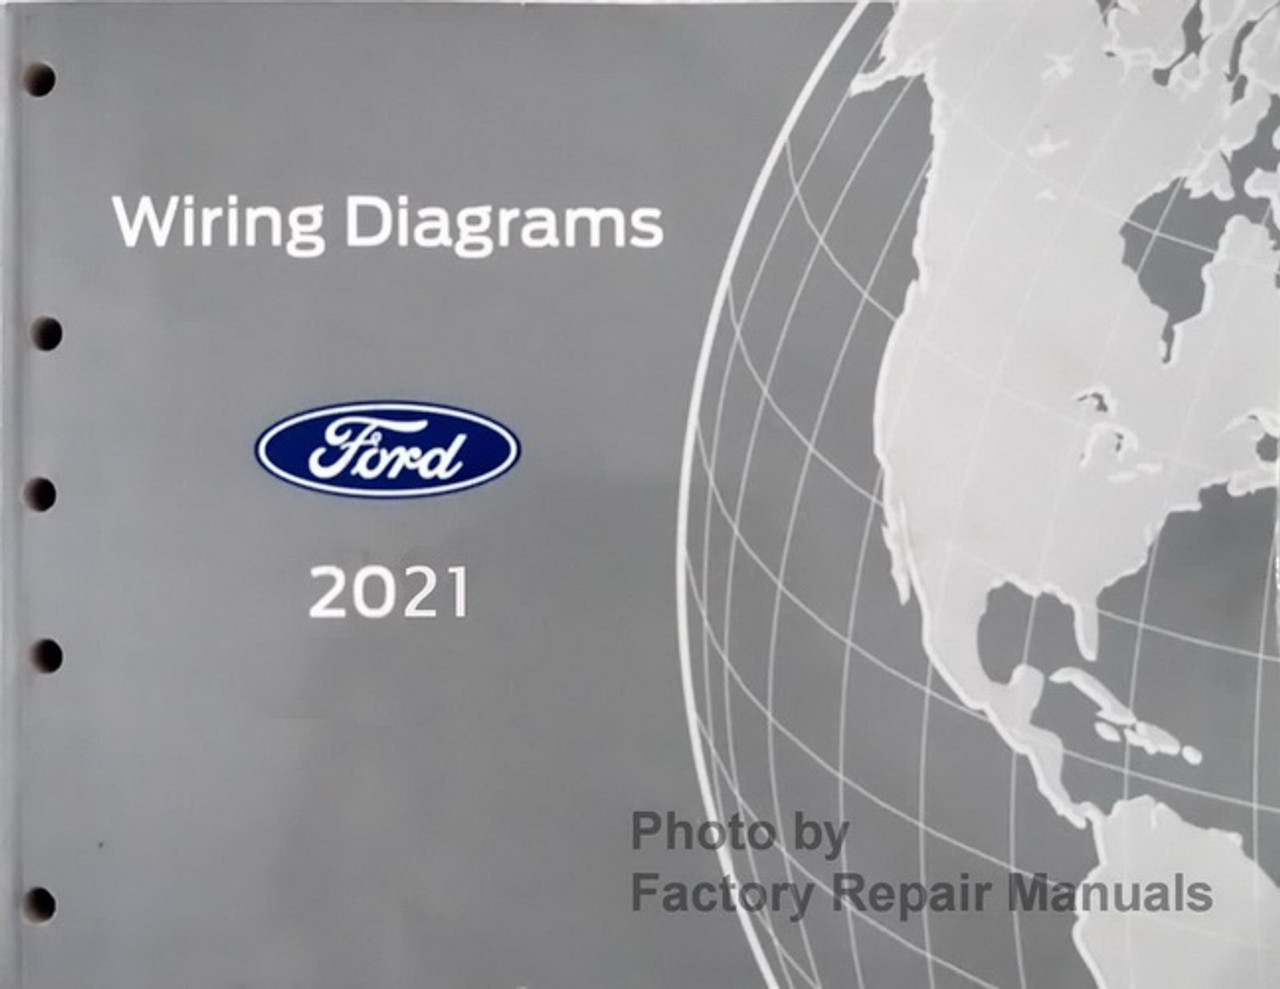 2021 Ford F150 Electrical Wiring Diagrams Original Factory Manual - Factory  Repair Manuals | Ford F150 Wiring |  | Factory Repair Manuals